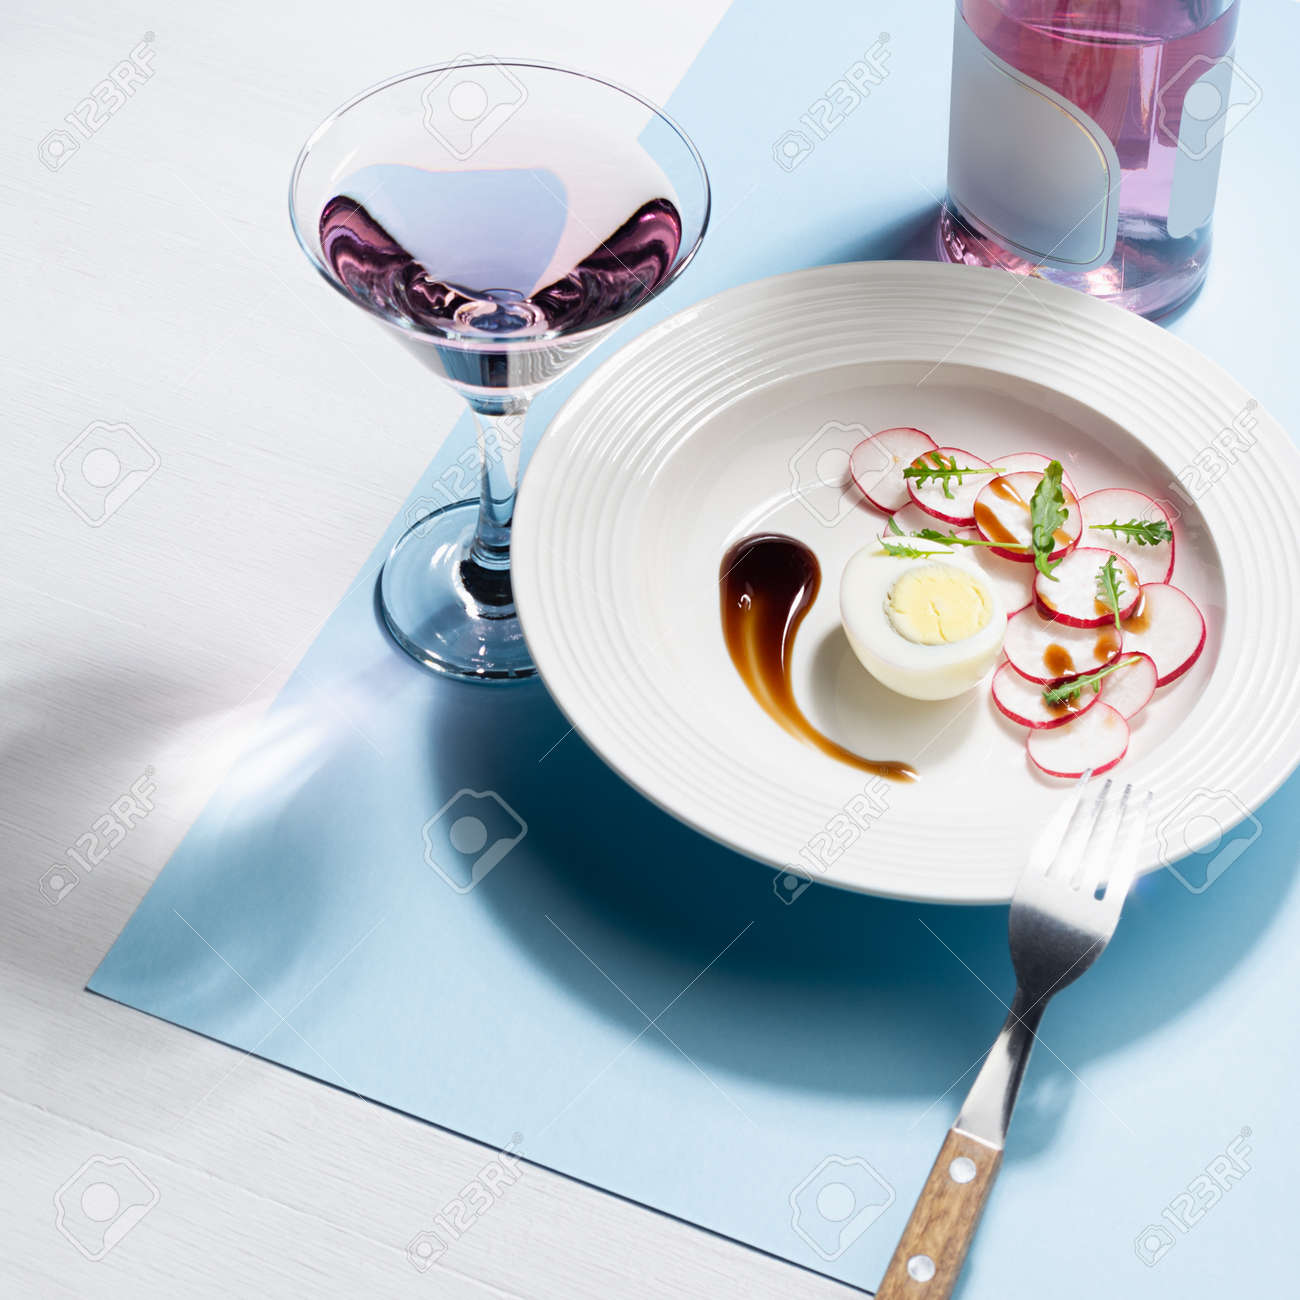 Fresh salad of radish, arugula and eggs with teriyaki sauce art plating, glass of rose wine, bottle, cutlery on white wood table, blue color with shadow in sunlight, square. Colorful geometric style food background. - 168468973